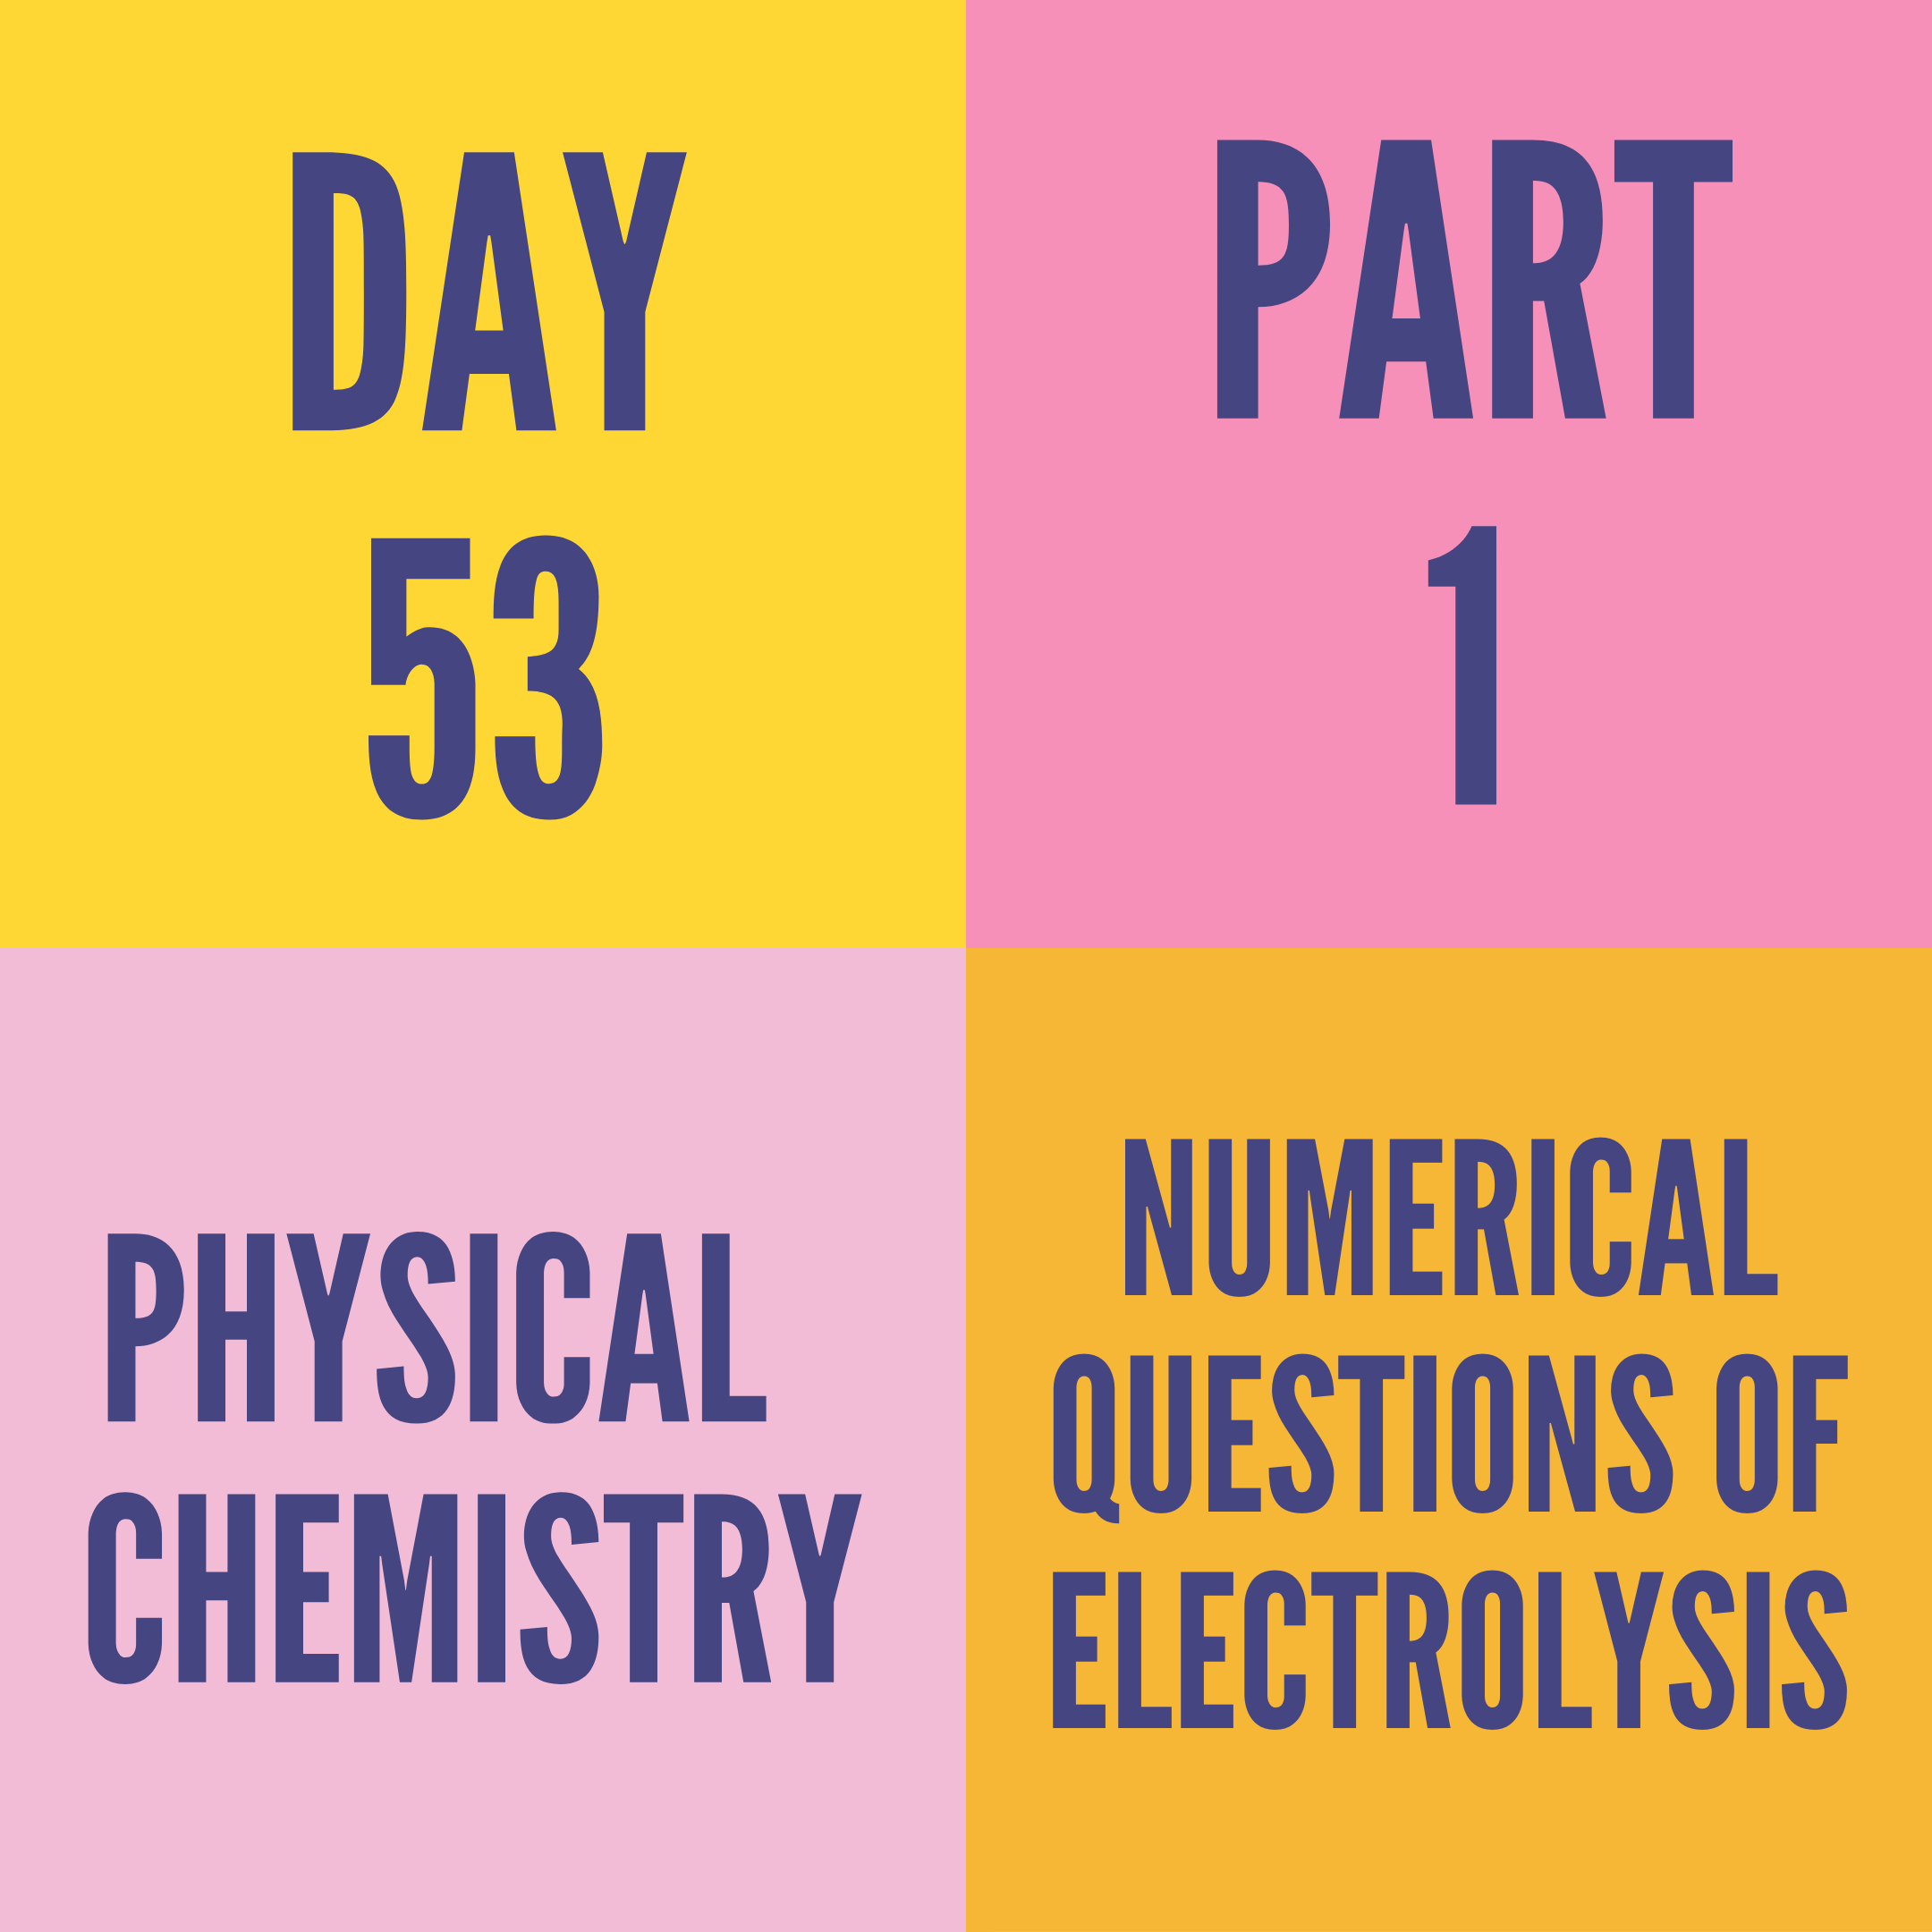 DAY-53 PART-1 NUMERICAL QUESTIONS OF ELECTROLYSIS